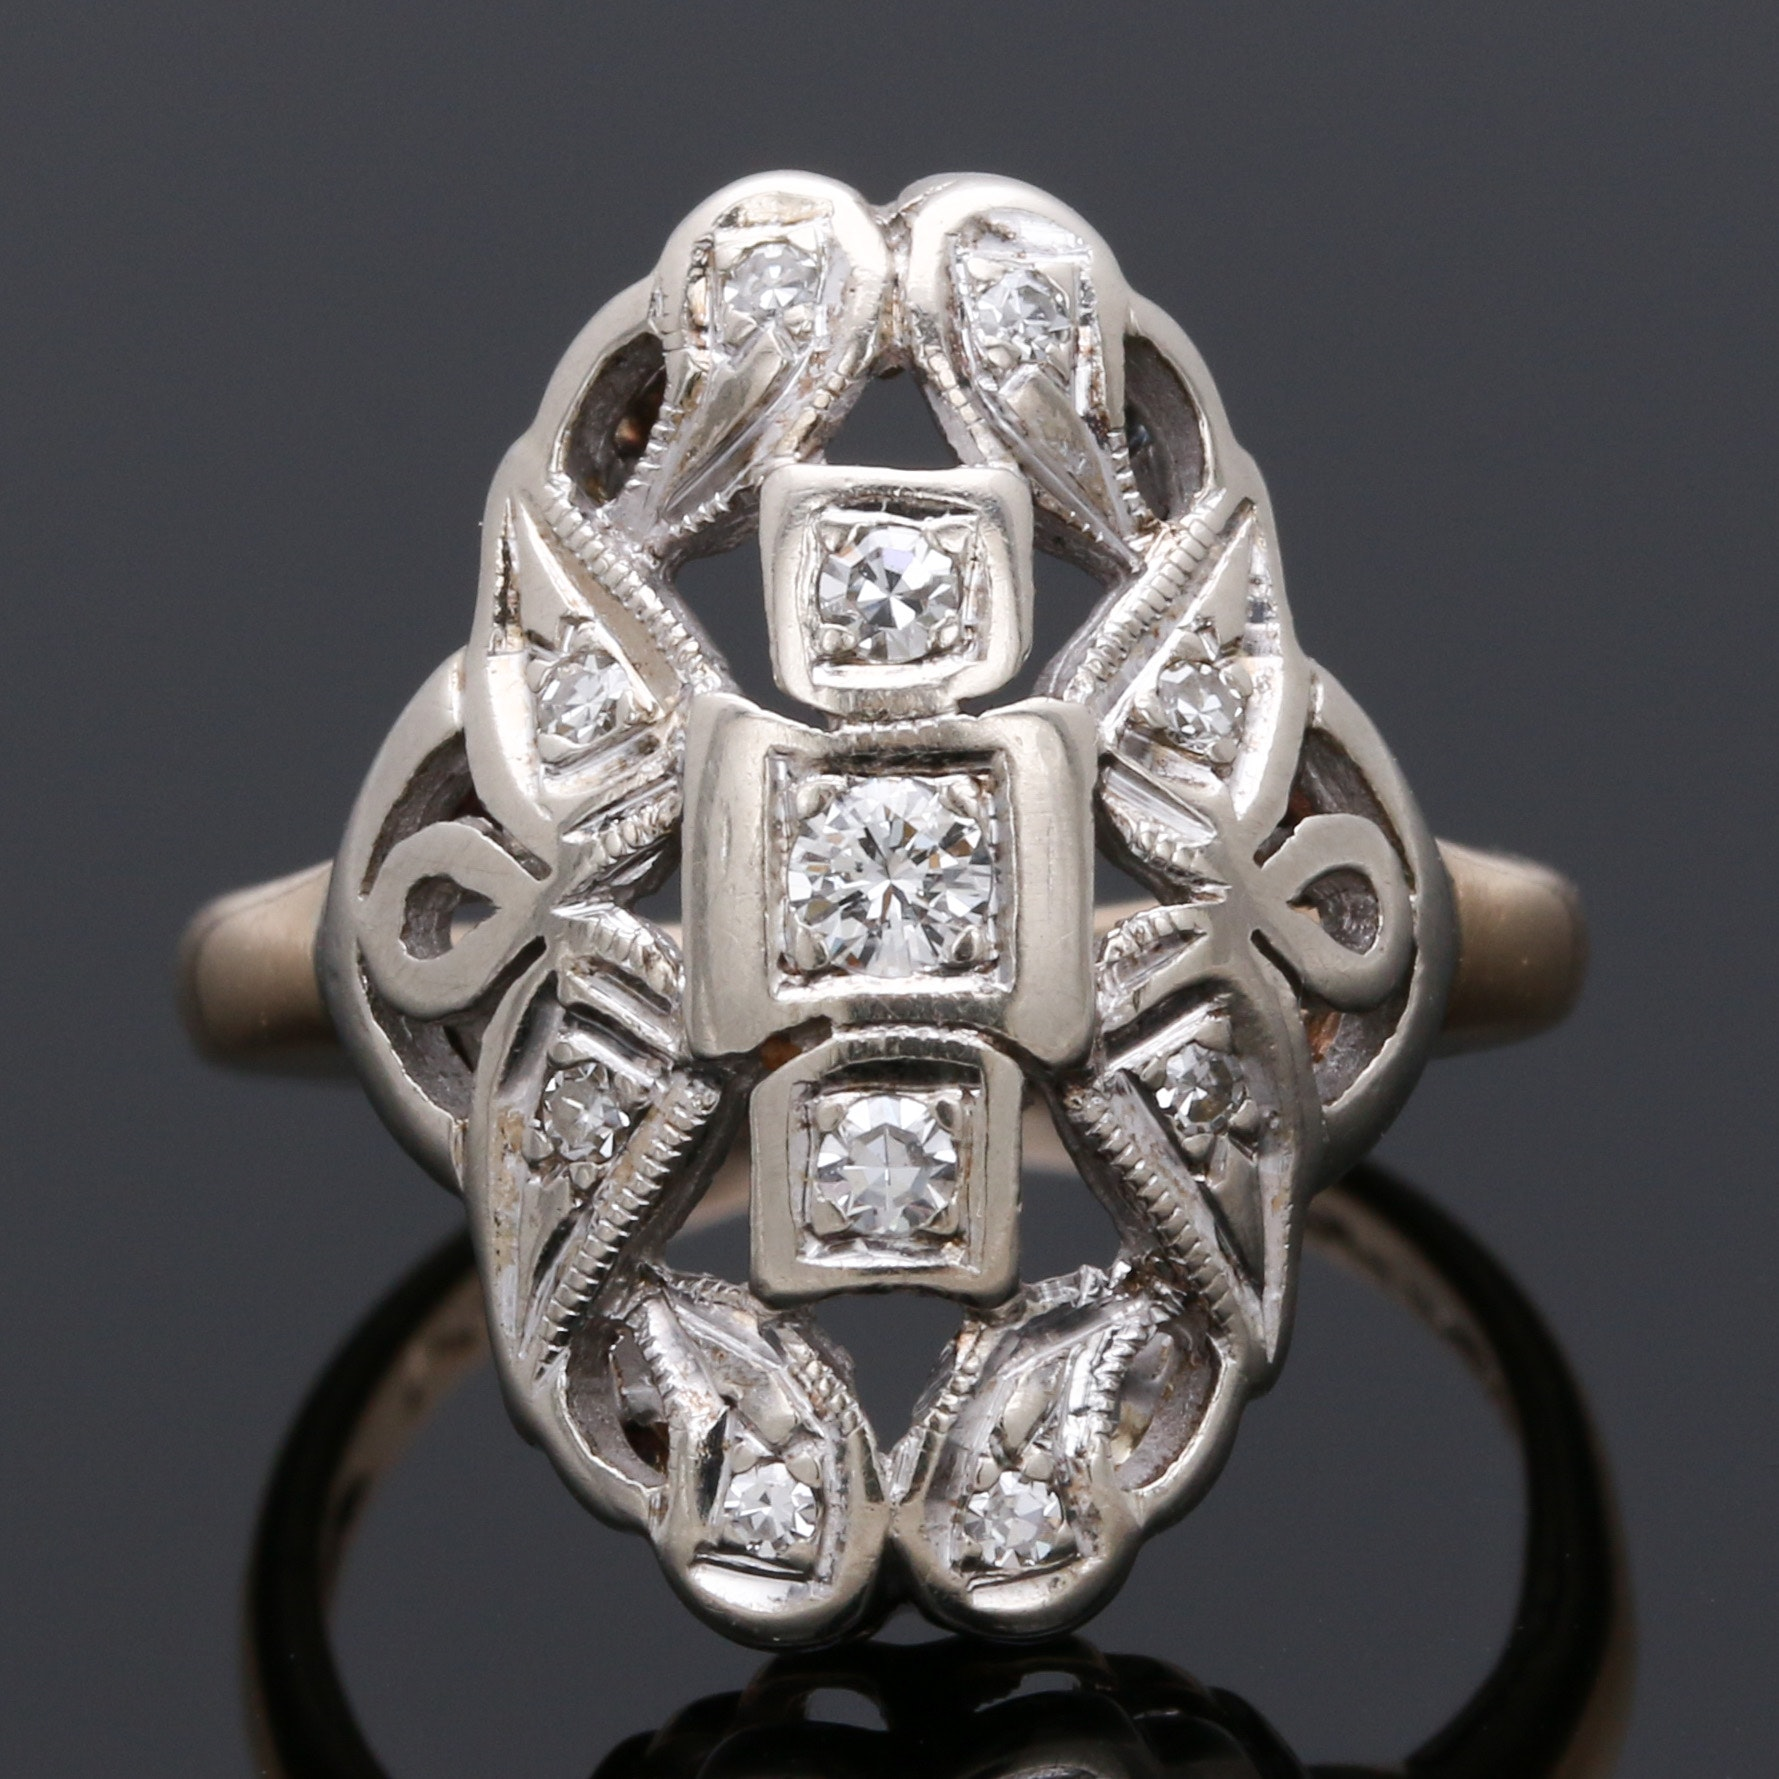 Mid-Late Edwardian 14K White and Yellow Gold Diamond Dinner Ring